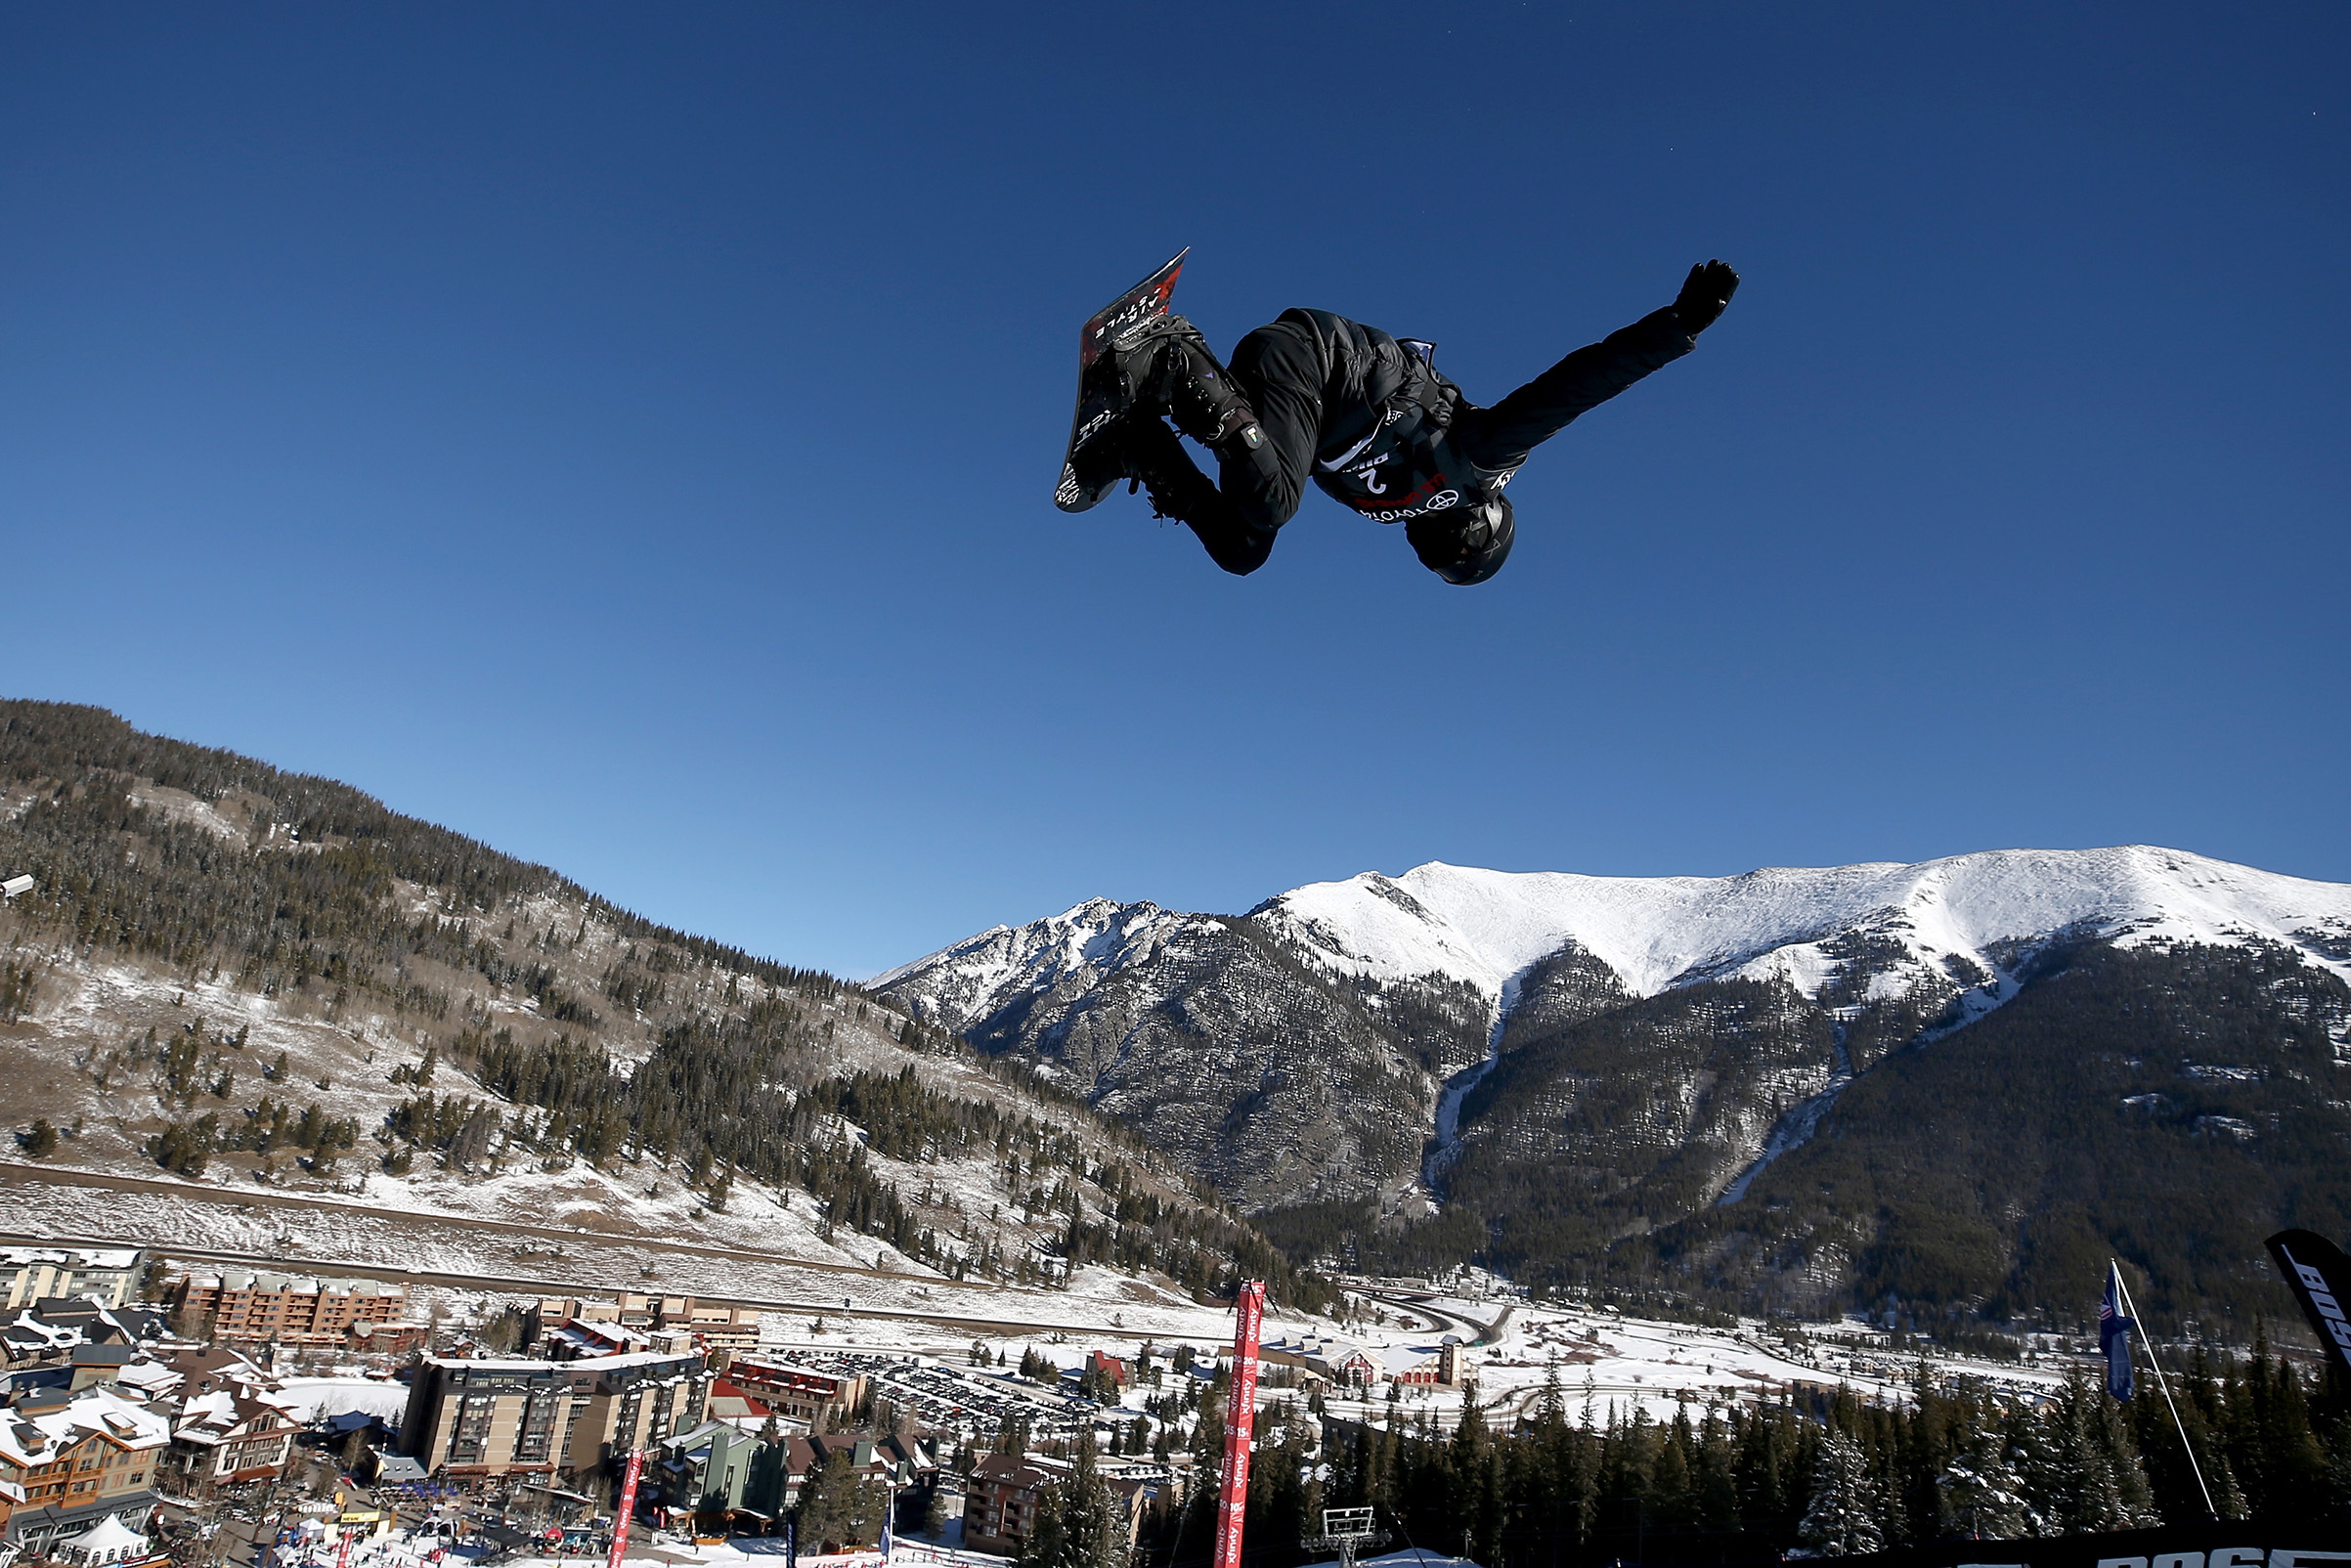 Olympic athlete Shaun White of the United States competes in the finals of the FIS Snowboard World Cup 2018 Men's Snowboard Halfpipe in Copper Mountain, Colo., on Dec. 9, 2017. Sean M. Haffey—Getty Images